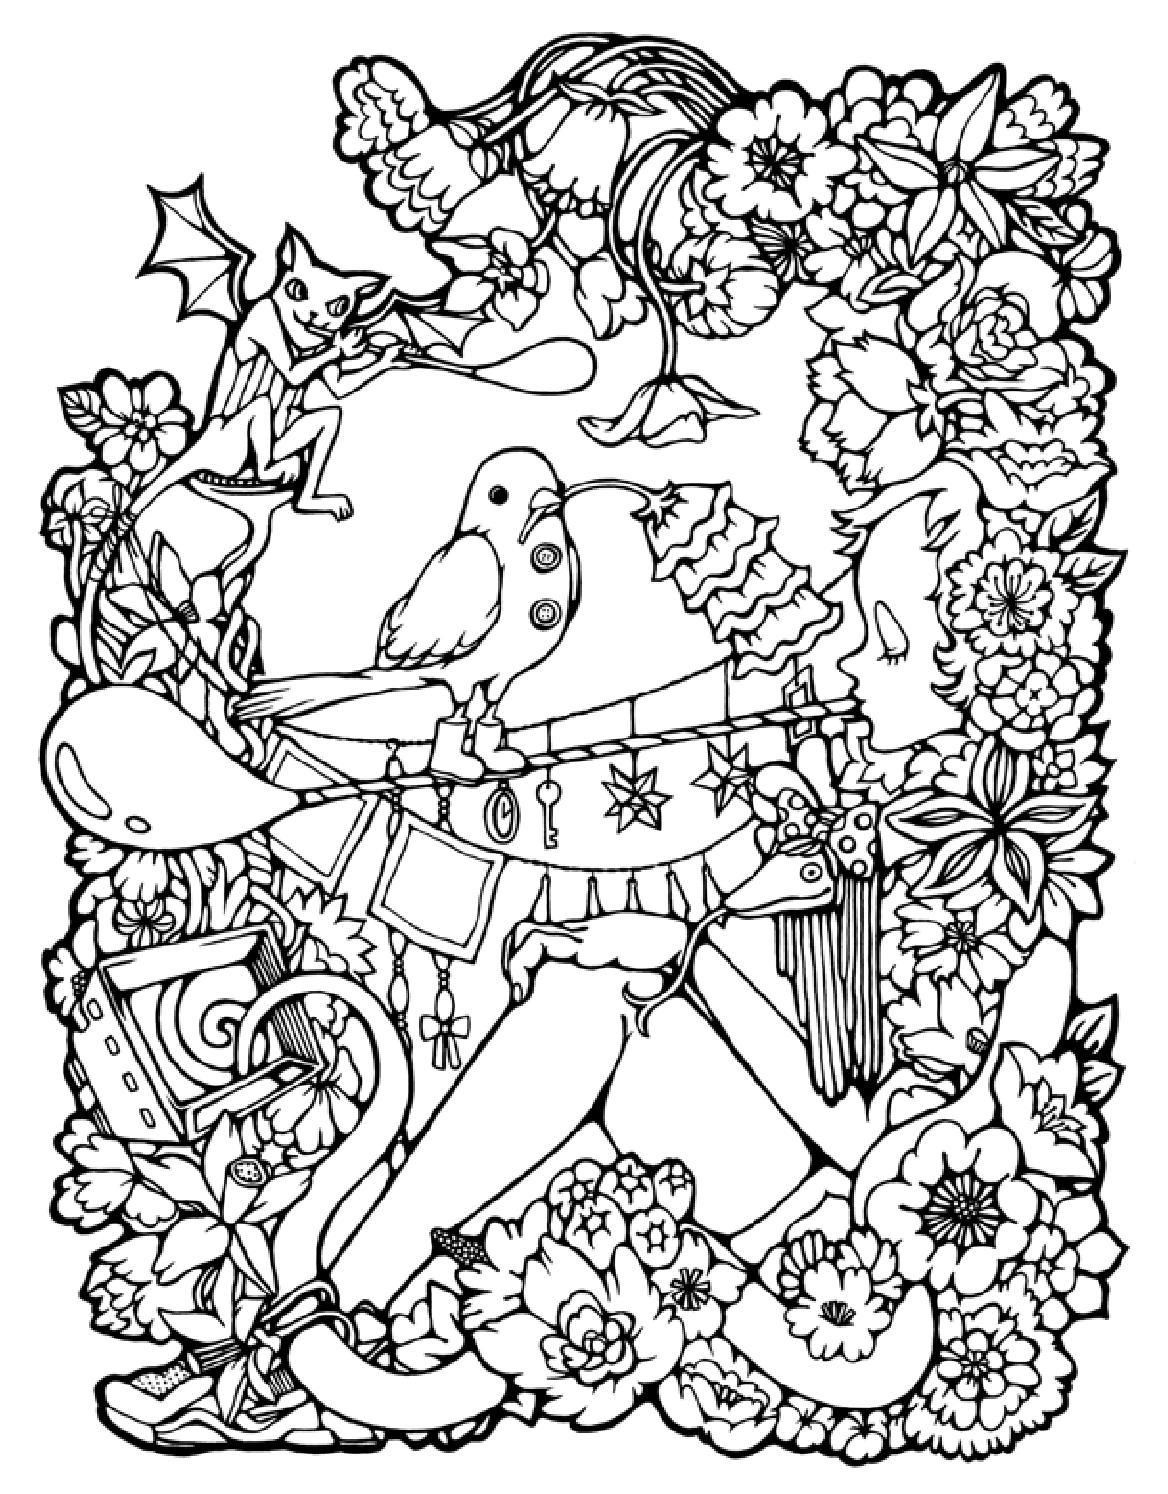 ClippedOnIssuu From DOODLERS ANONYMOUS COLORING BOOK